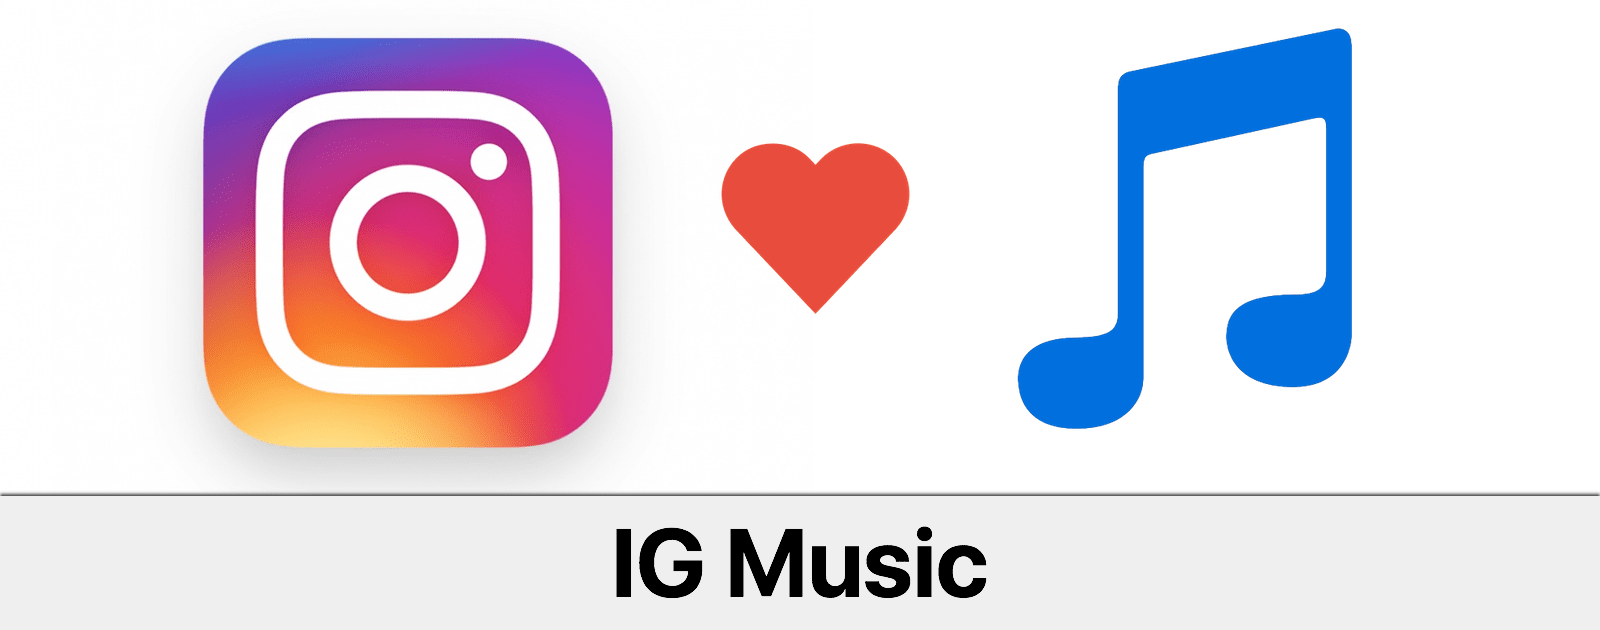 iOS: How to Add Music to Instagram Stories - The Mac Observer